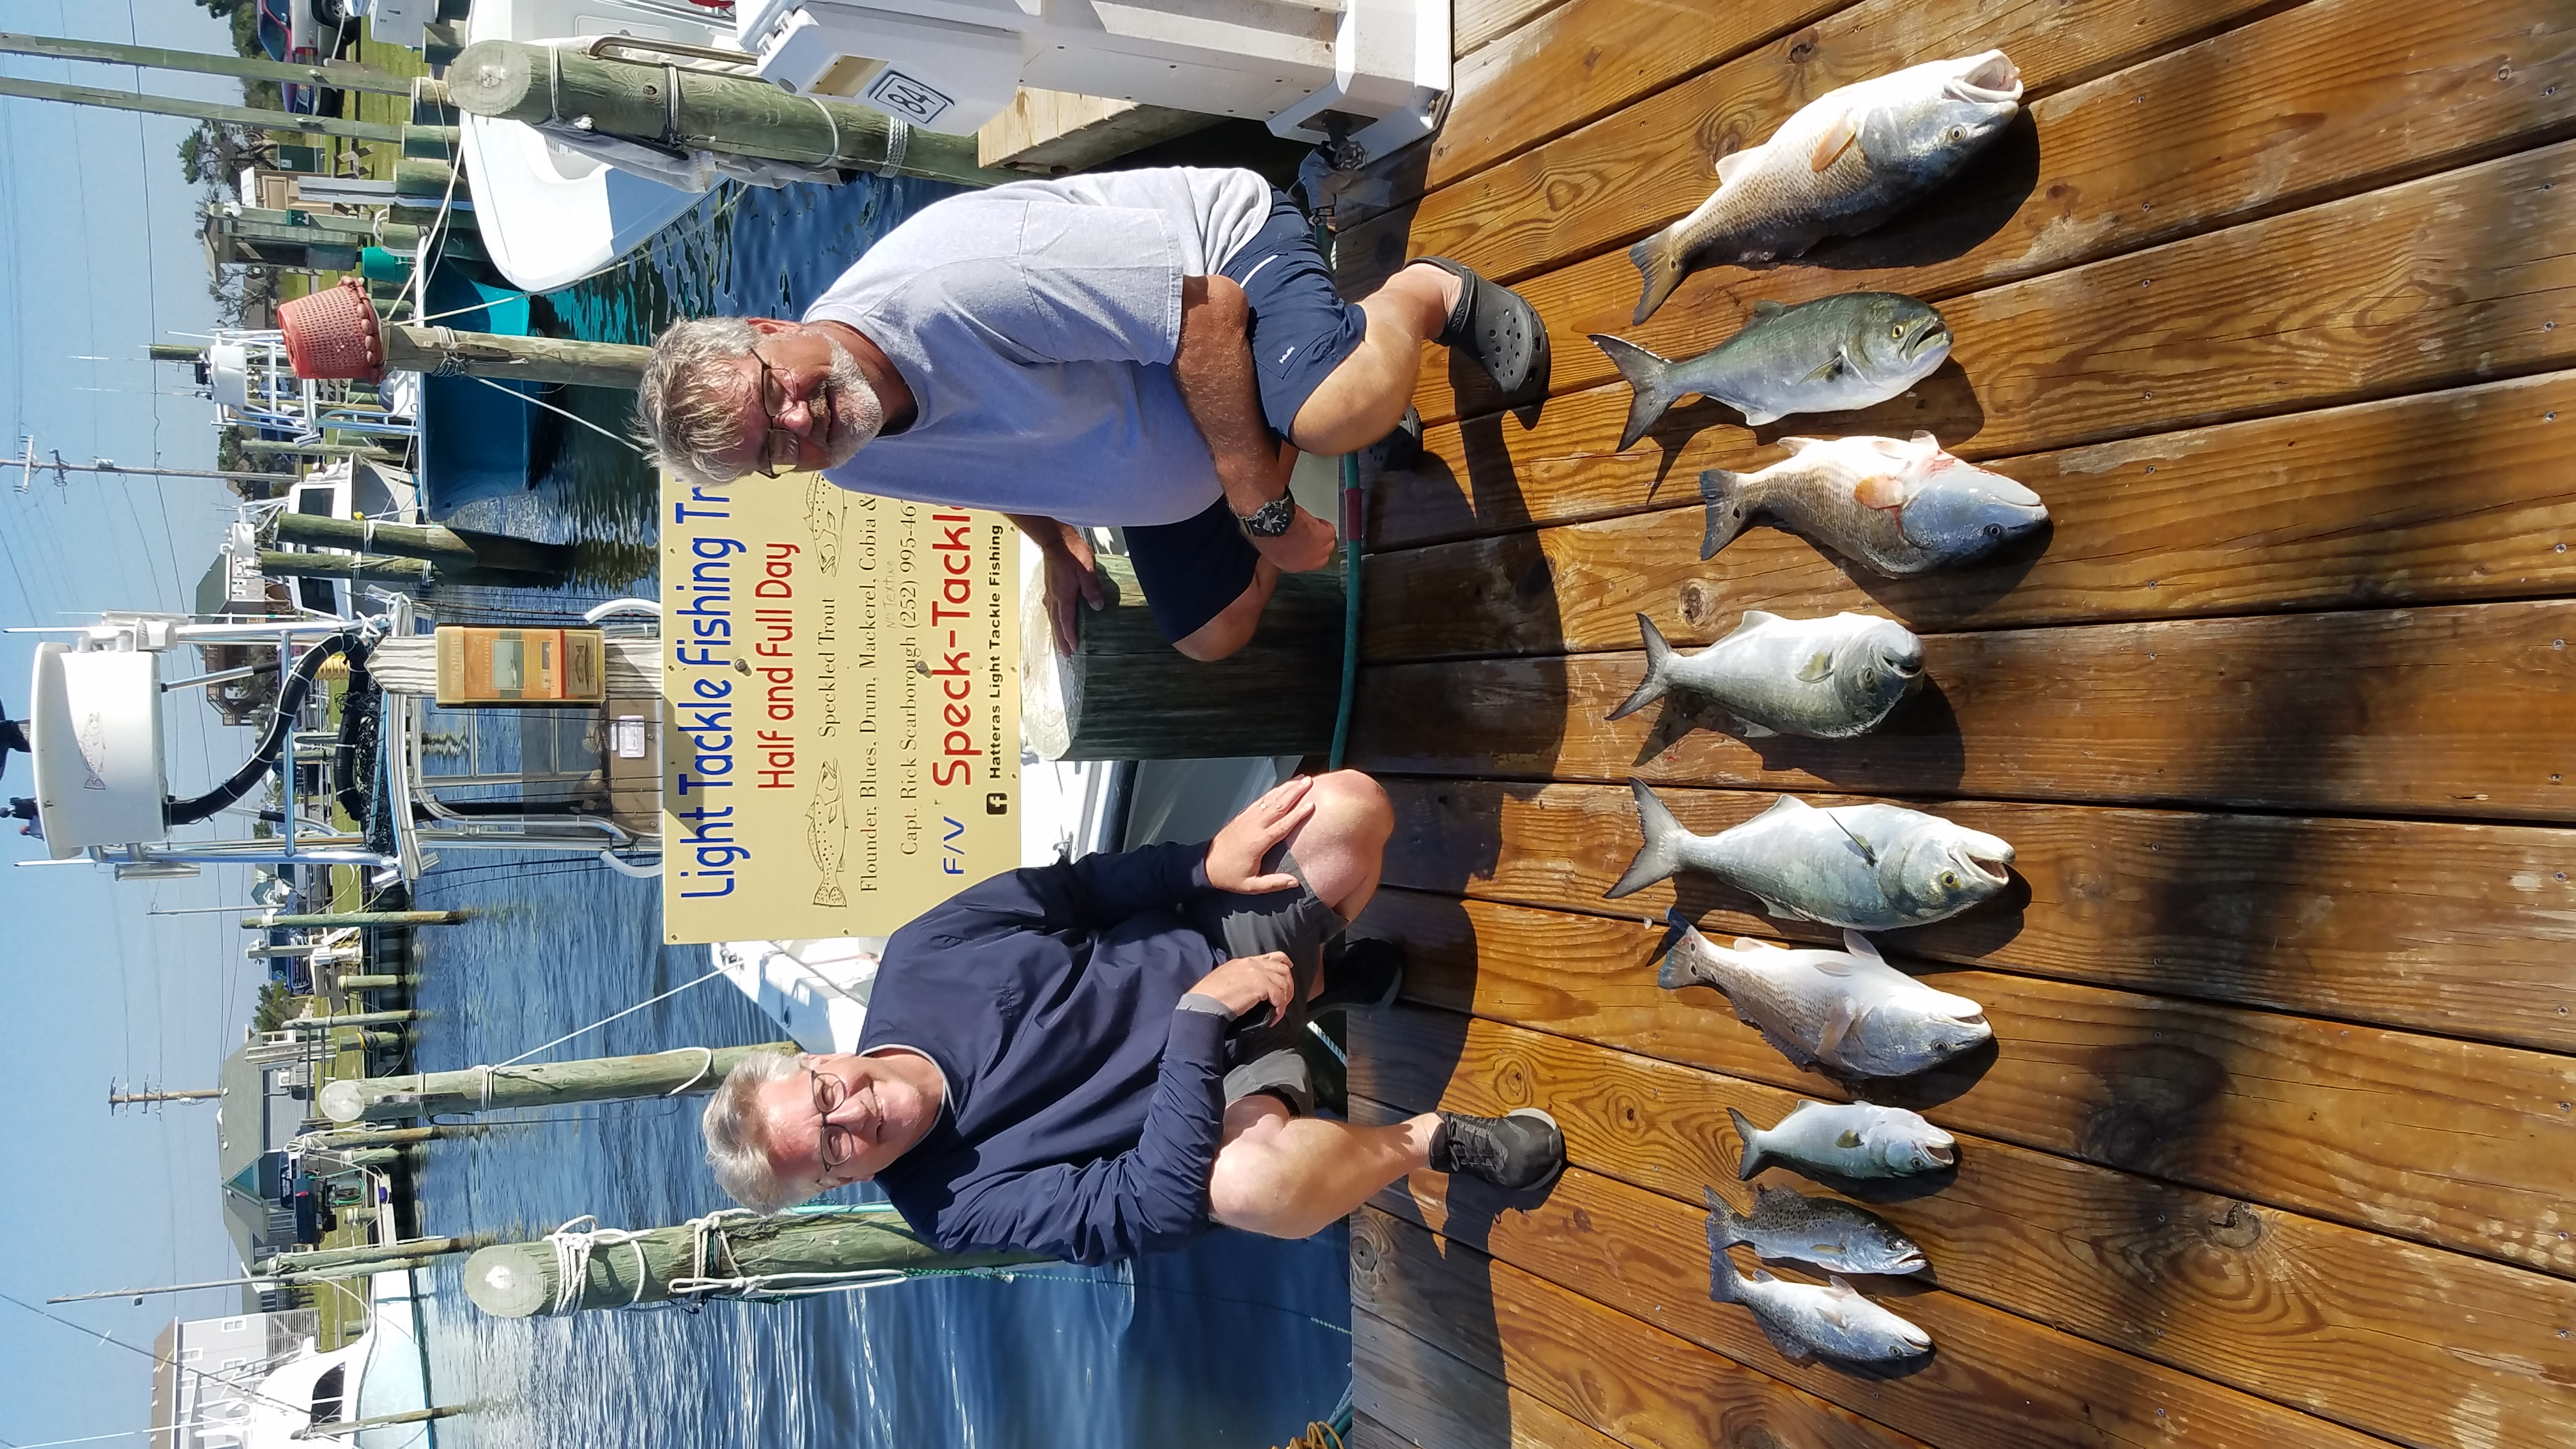 Speck-Tackler Fishing Teach's Lair Hatteras Inshore Charters